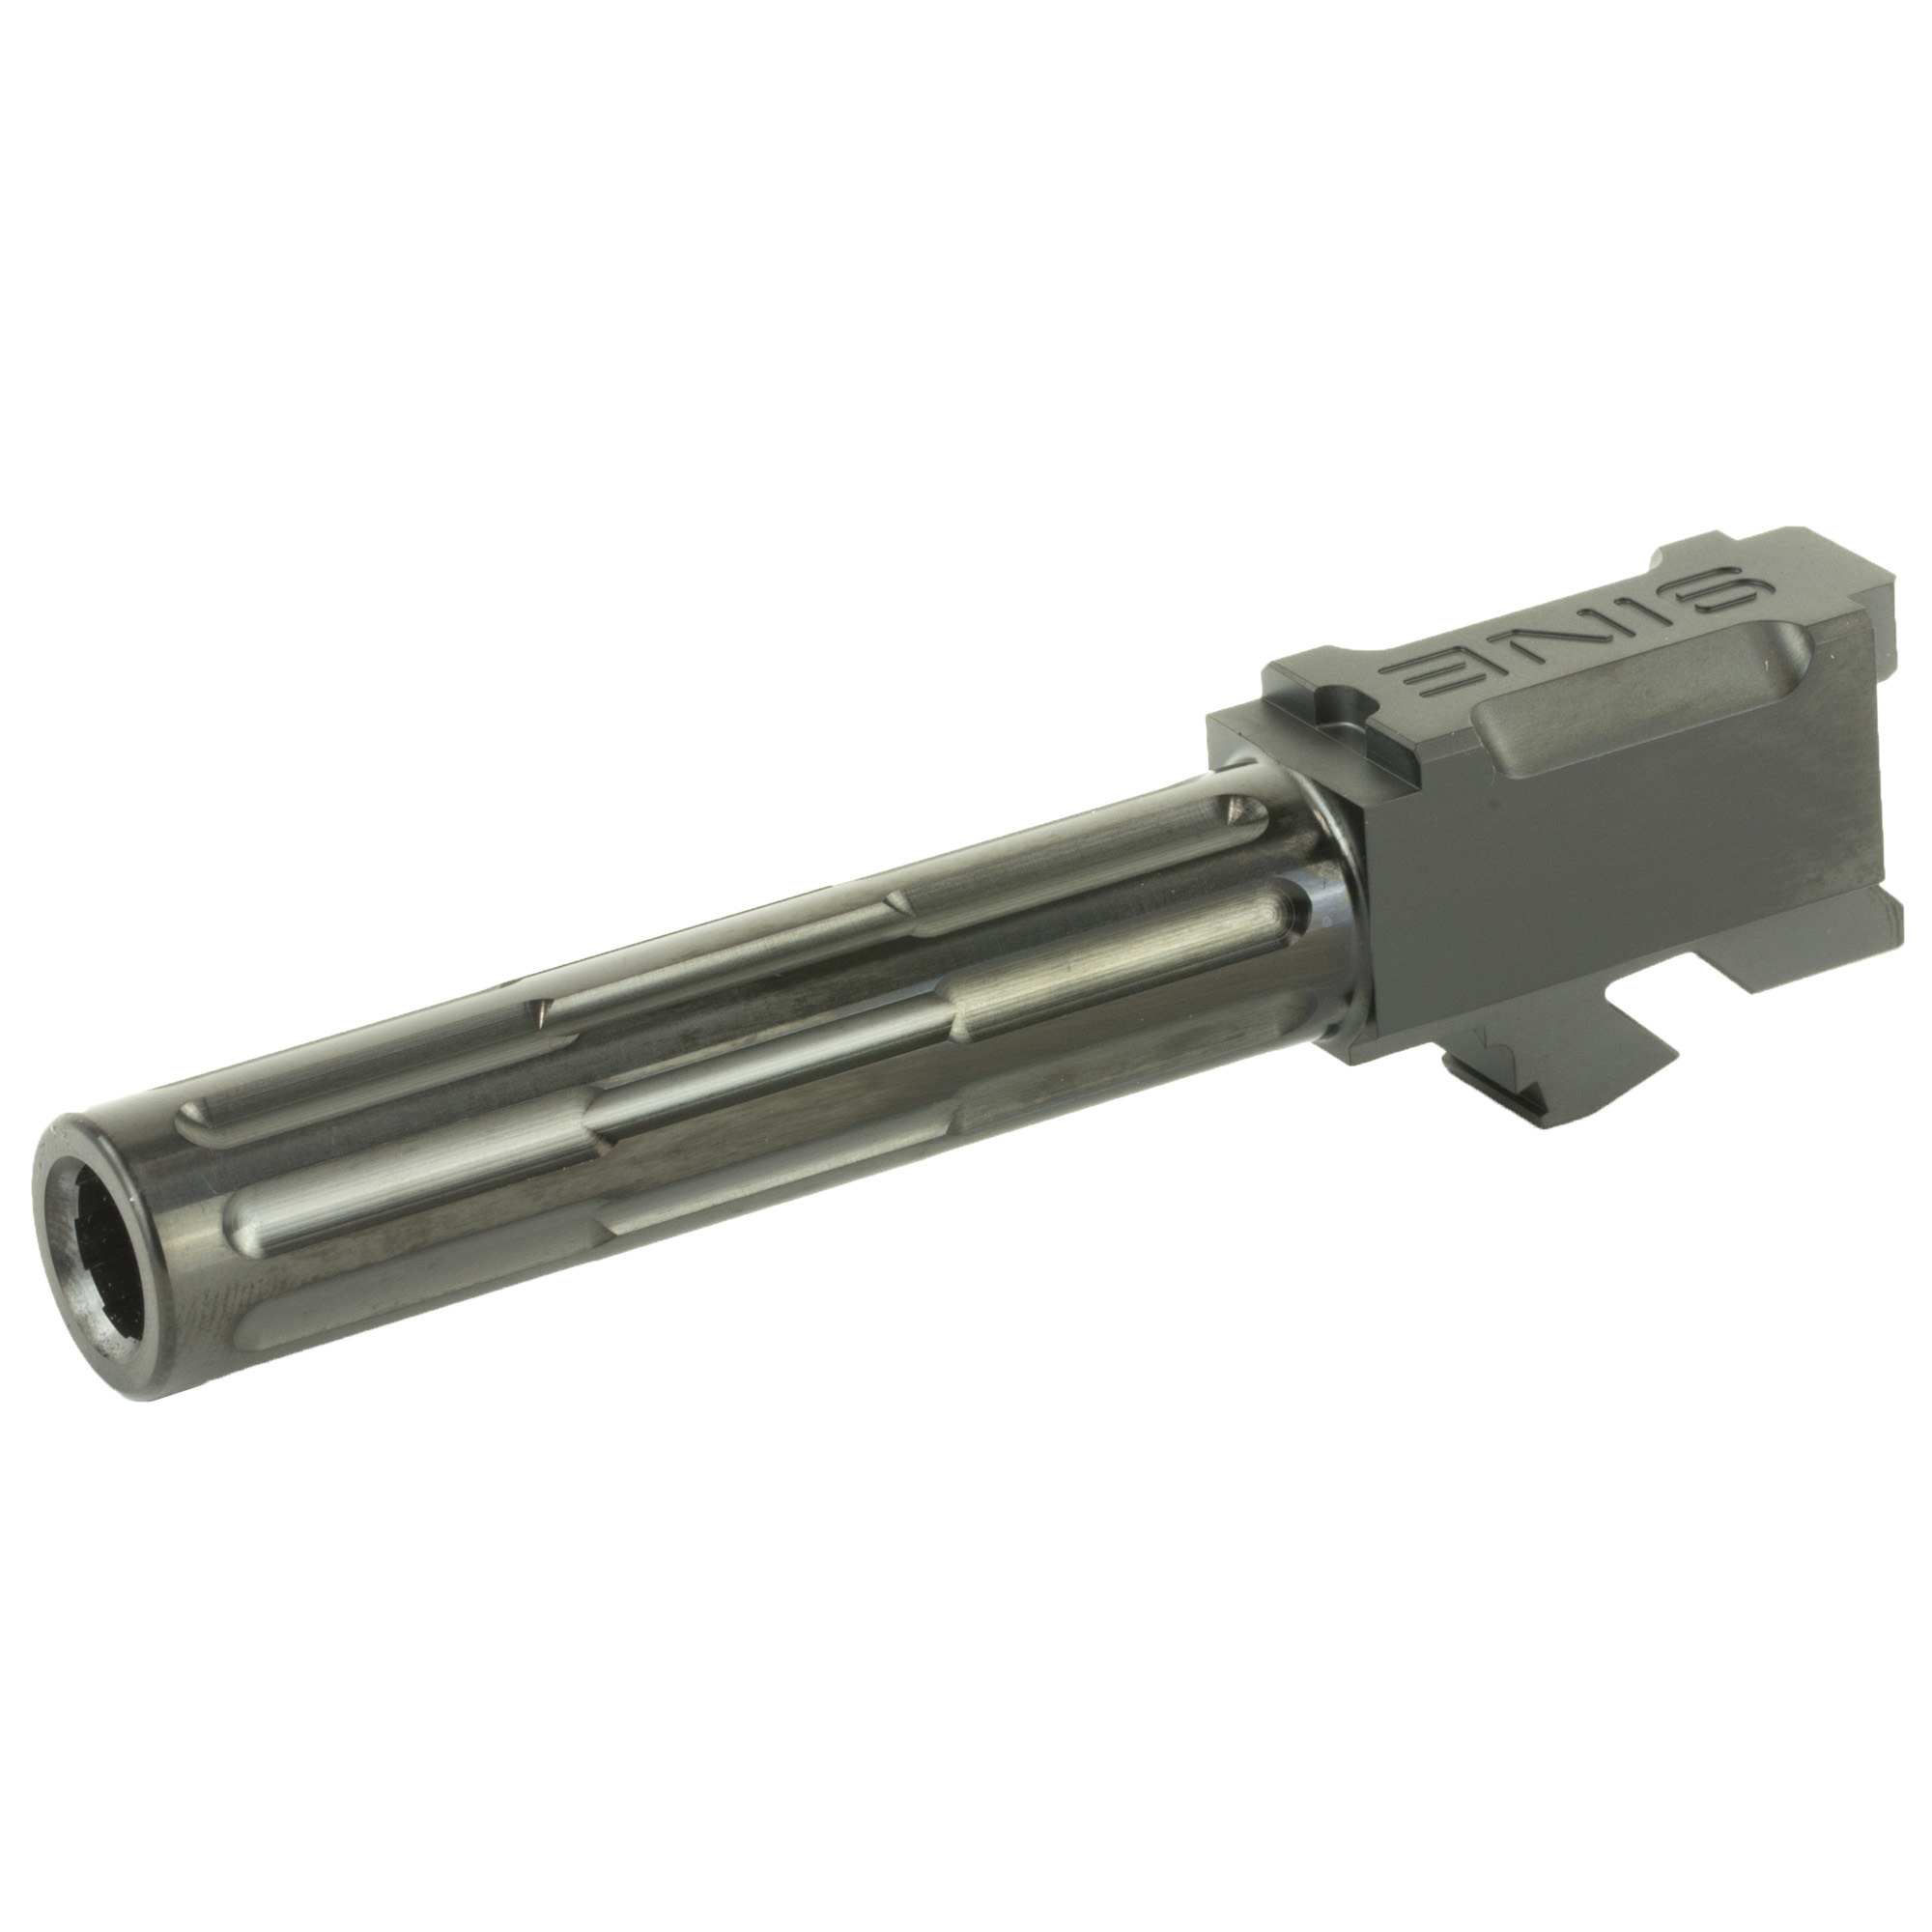 """Professional upgrade drop in barrels for Gen 3 & 4 Glock 19 Pistols. Match Grade barrels are precision machined from Certified pre hardened DFARS compliant 416R chromium gun barrel quality stainless steel"""" to extremely tight tolerances and exacting details. 416R stainless steel is renowned for its corrosion resistance"""" machinability and high tensile strength"""" it is the industry standard for Match Grade barrel manufacturing. Lantac's machining and production process delivers an ultra-precise barrel with tightened slide fit & lock up for improved accuracy. 6 groove"""" cut rifled"""" 1:10 Twist Right Hand"""" fully inspected"""" double honed (rough and finish) to produce a bore with a Max Roughness Average (RA) of 12. Chambers are Match Grade SAAMI specification"""" precision cut and polished to a maximum Roughness Average (RA) of 16. The pre hardened 416R stainless steel is stress relieved to a proprietary recipe after rifling and final hardness is 38-42 Rockwell C before final shaping and profiling work is done. Final dimension is held to a +/- 0.0002"""" deviation for maximum consistency"""" accuracy and quality. Barrels are bead blasted to create a satin finish prior to plating. 9INE Barrels are a drop in fit and do not require gunsmithing for assembly. These are an ultra accurate and extremely tough upgrade. Barrels are fluted and feature LANTAC's proprietary Patent Pending flute pattern."""